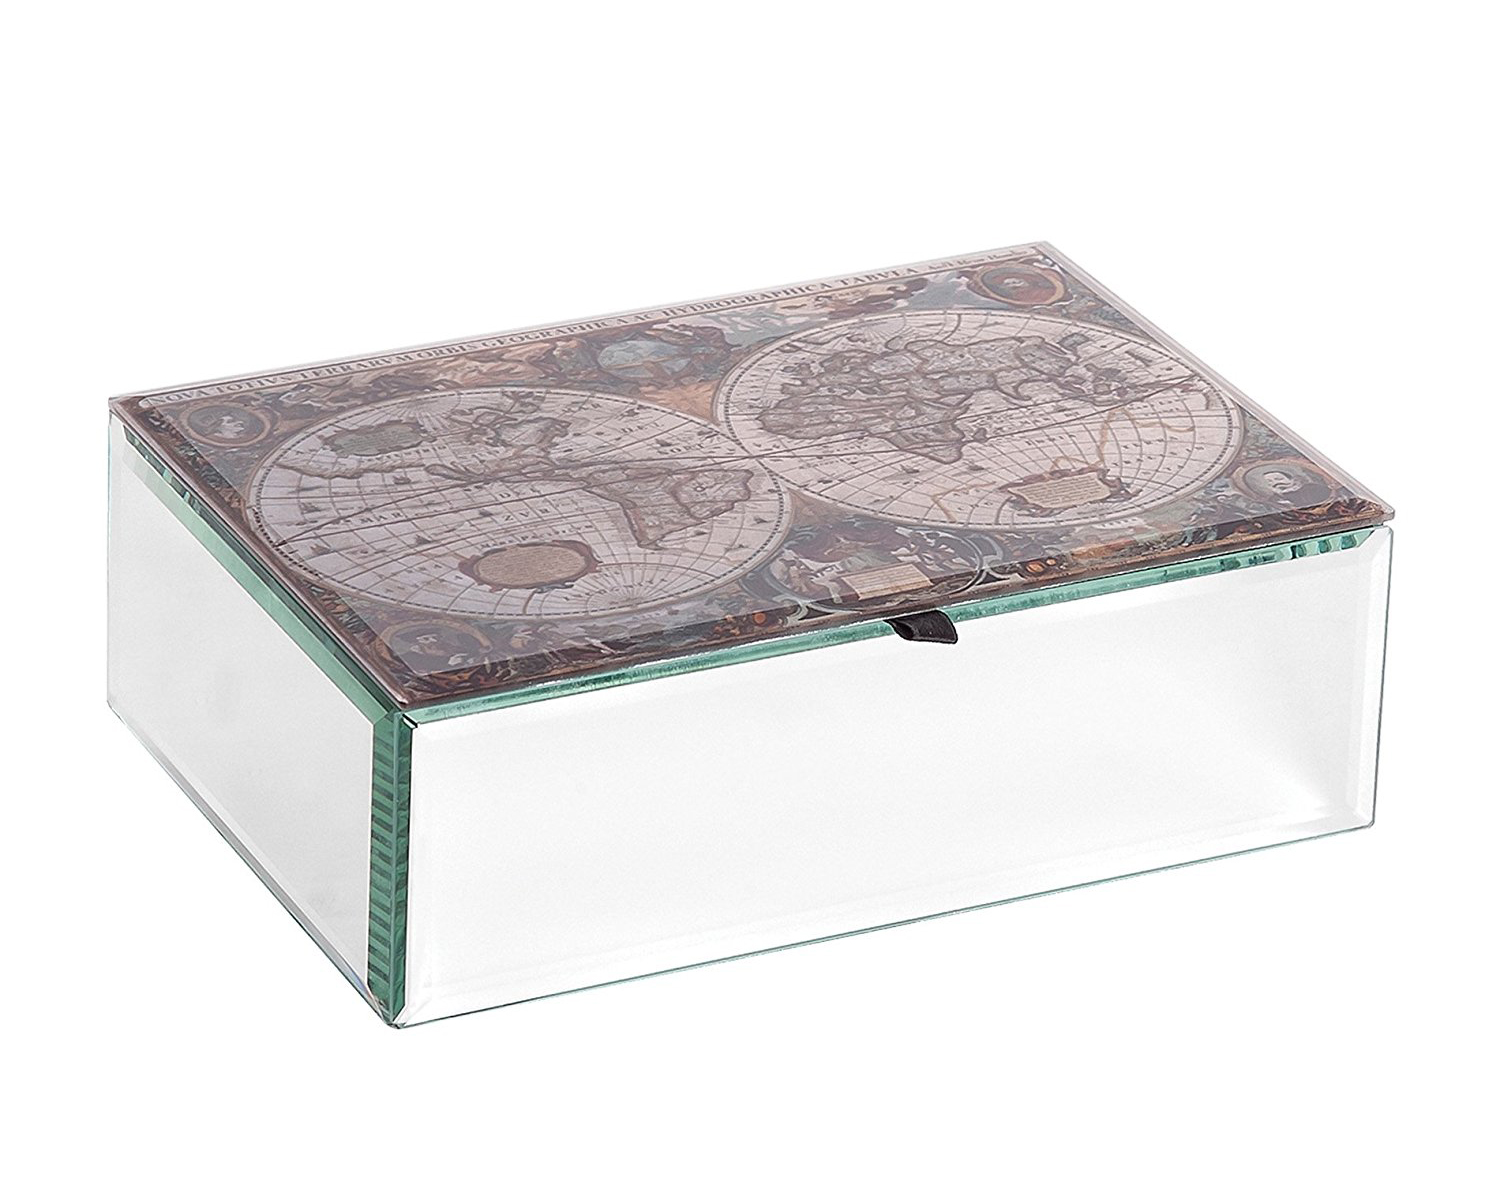 Fully Mirrored Geography Themed Lid Jewelry Box